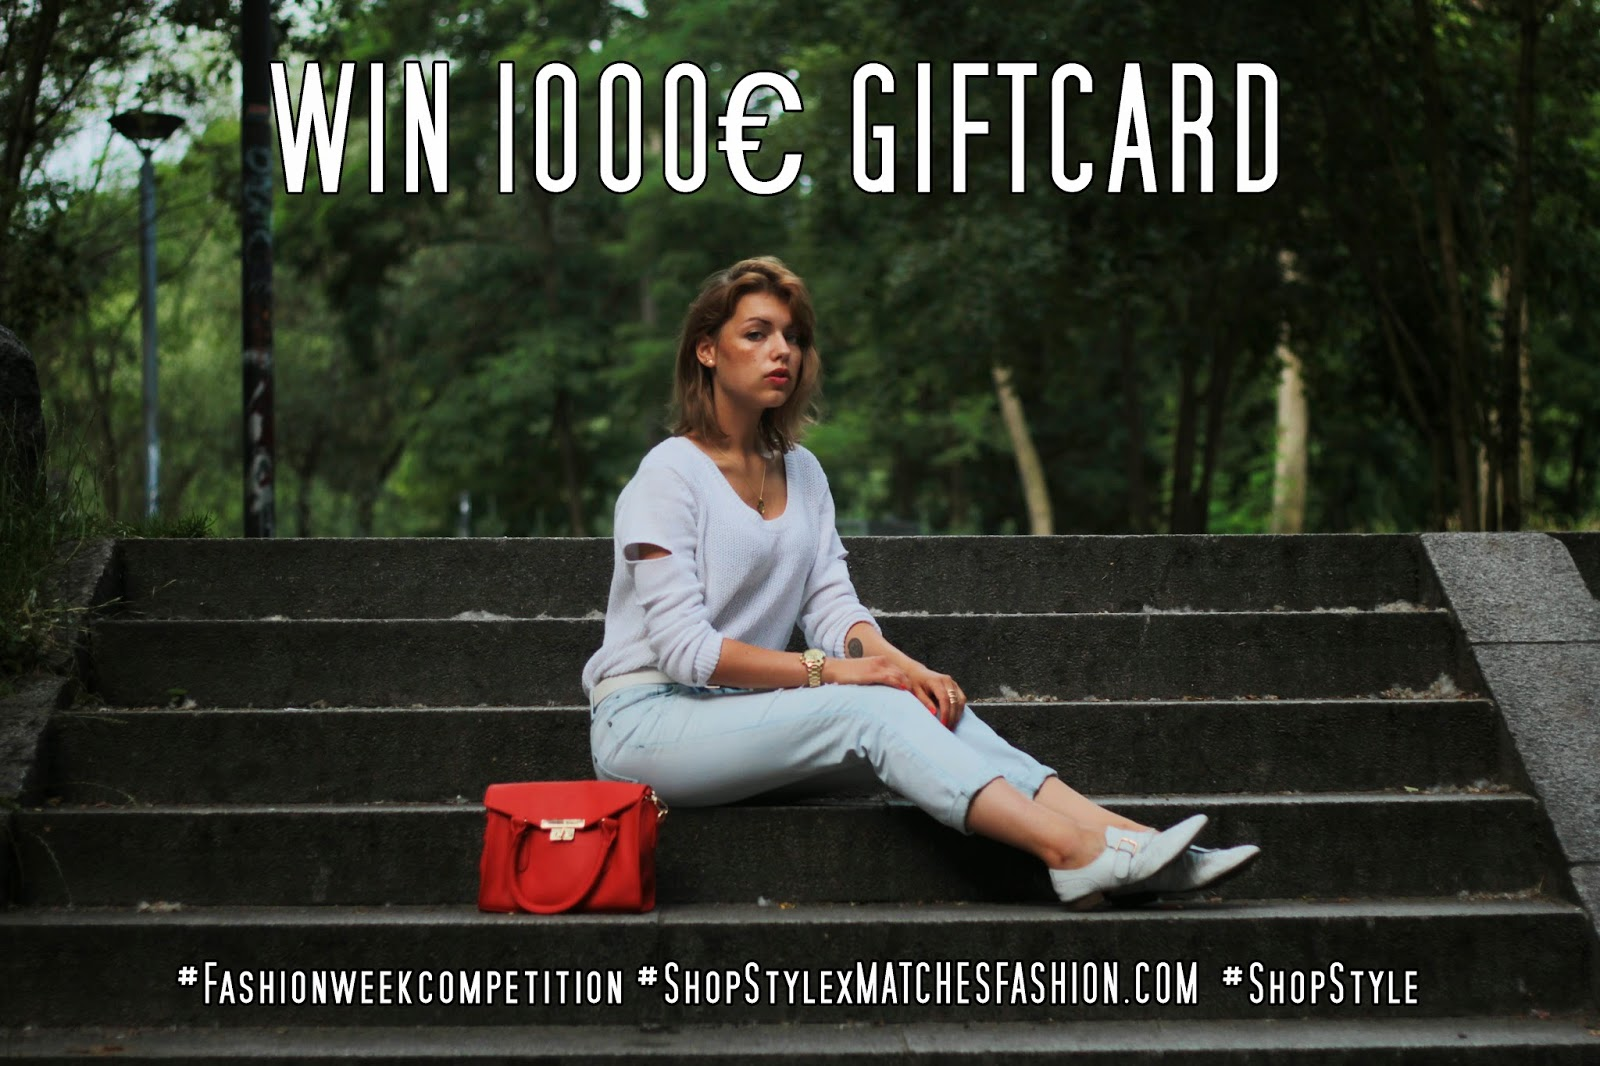 my berlin fashion giveaway #Fashionweekcompetition, #ShopStylexMATCHESFASHION.COM, #ShopStyle